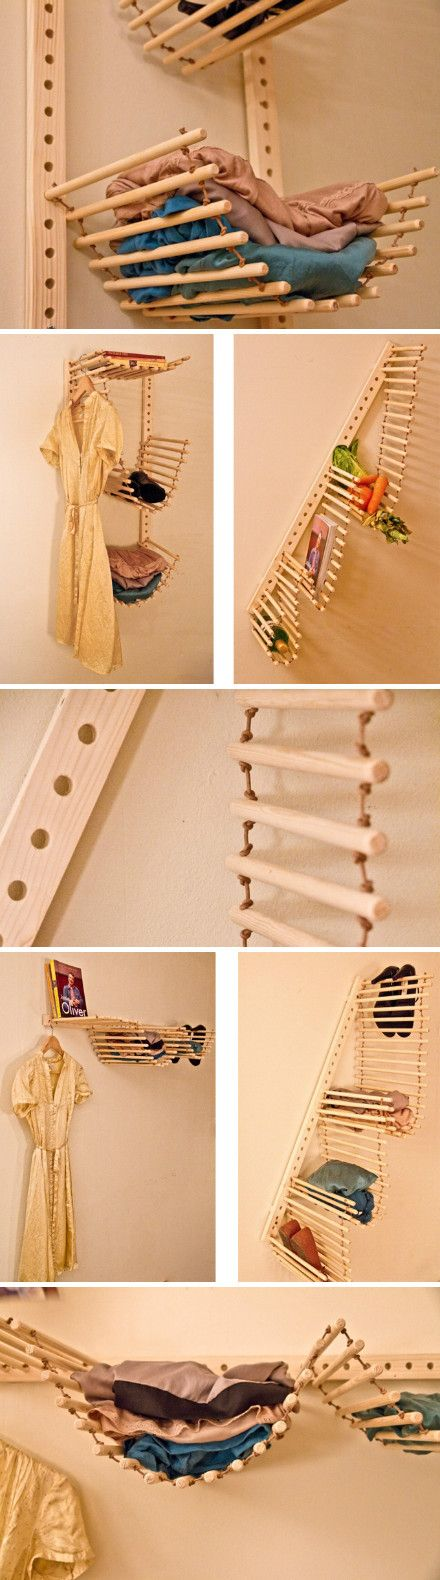 A very cool shelve which is very easy on the eye.  The use of a ladder concept actually looks very attractive on the eye.  Would go well if it were in the bathroom.  I like it how you can even hang shoes on it.